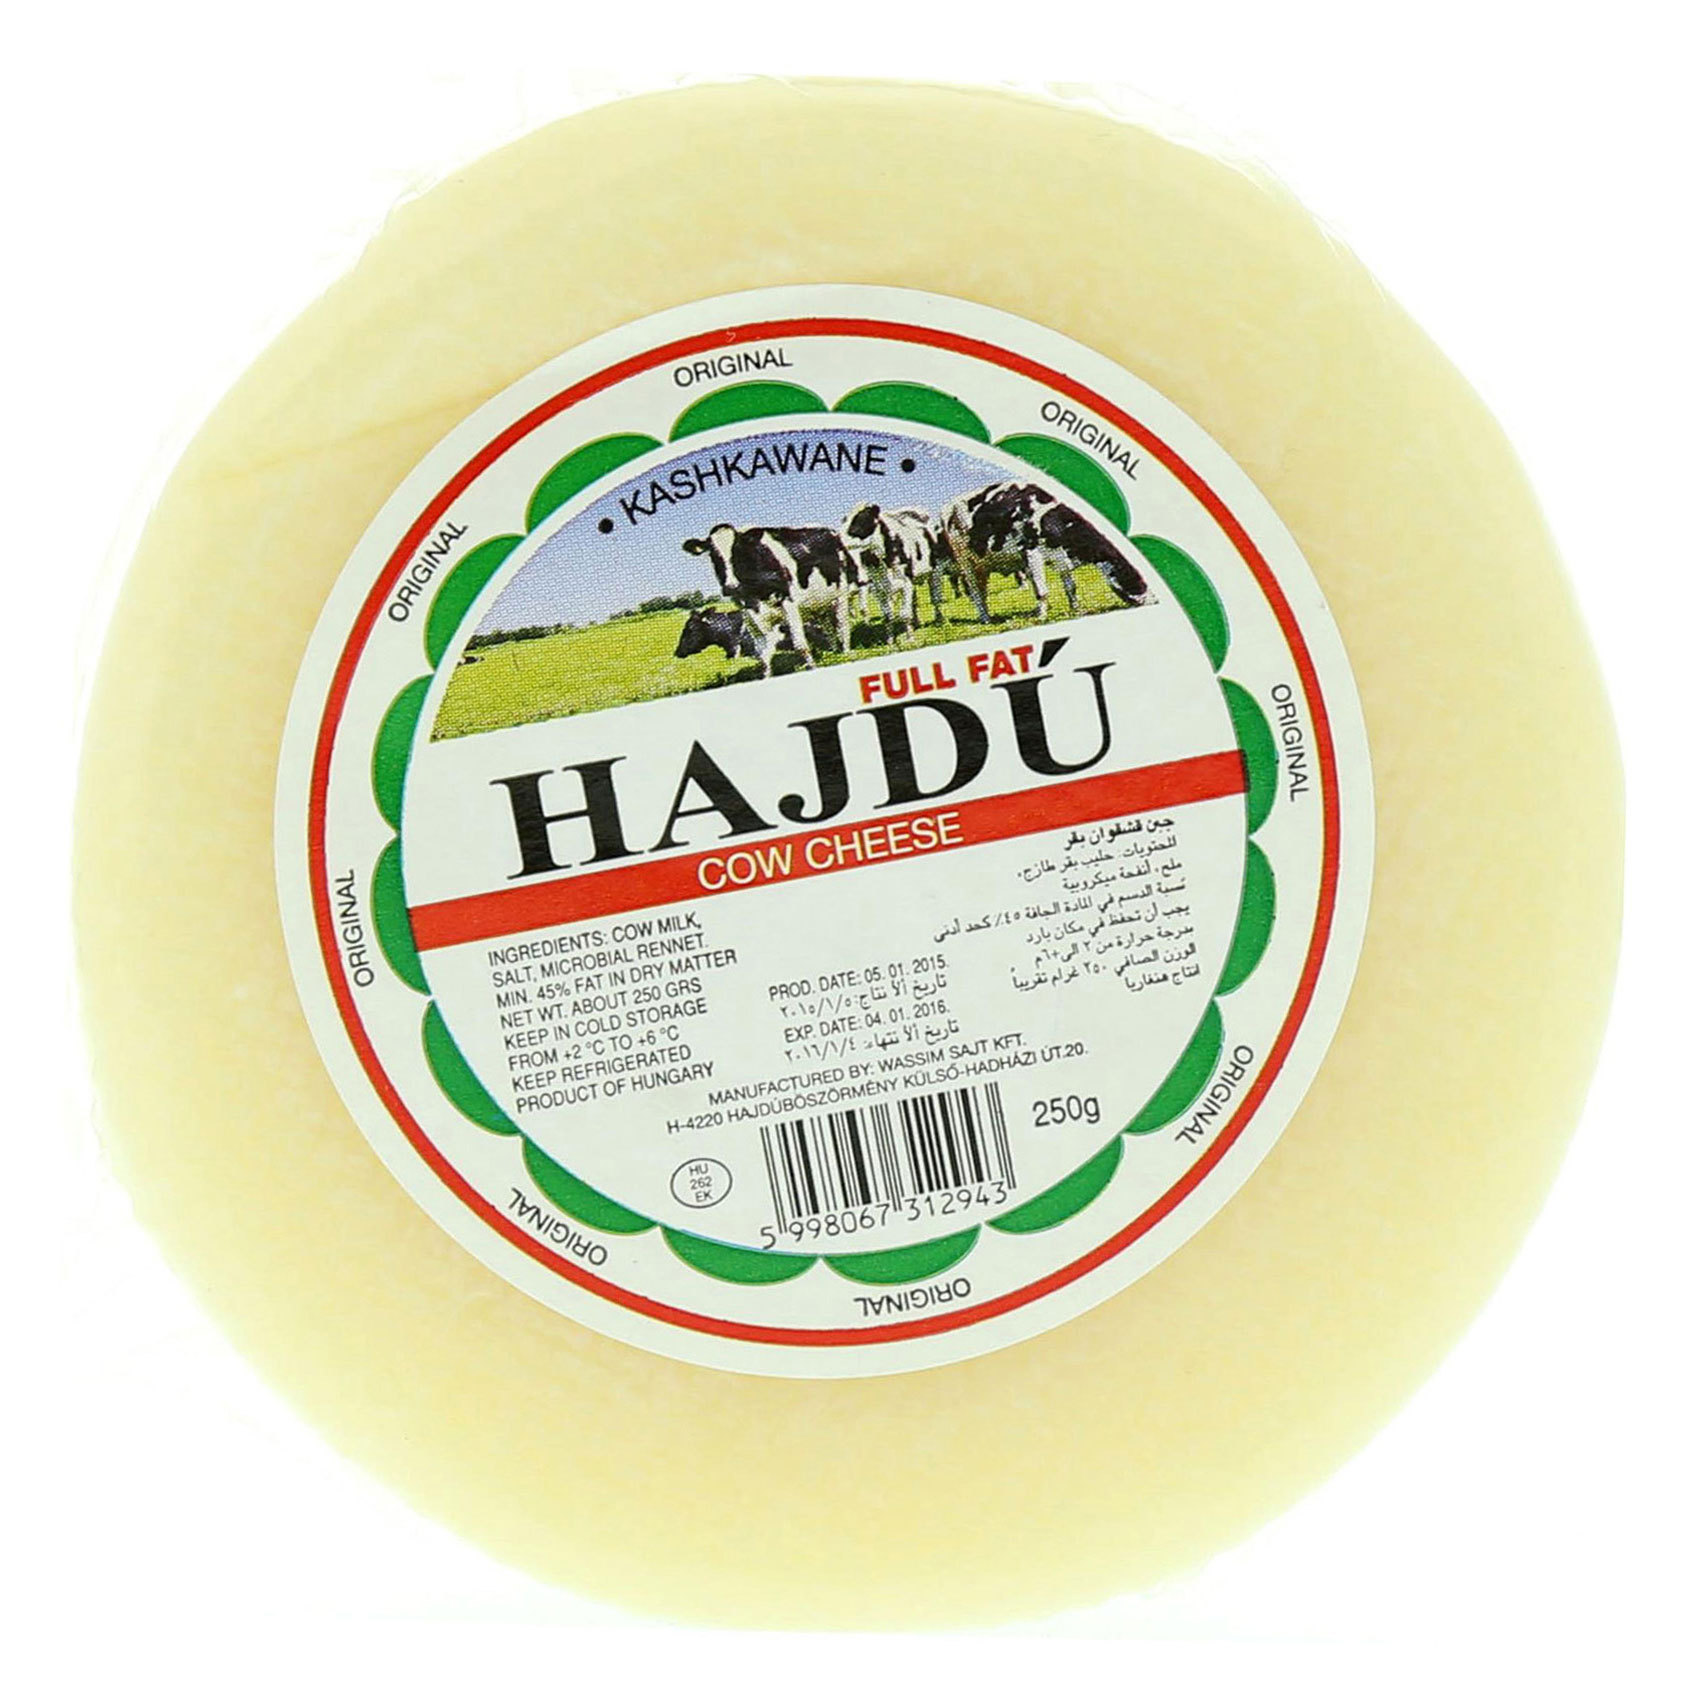 HAJDU COW CHEESE FF 250G